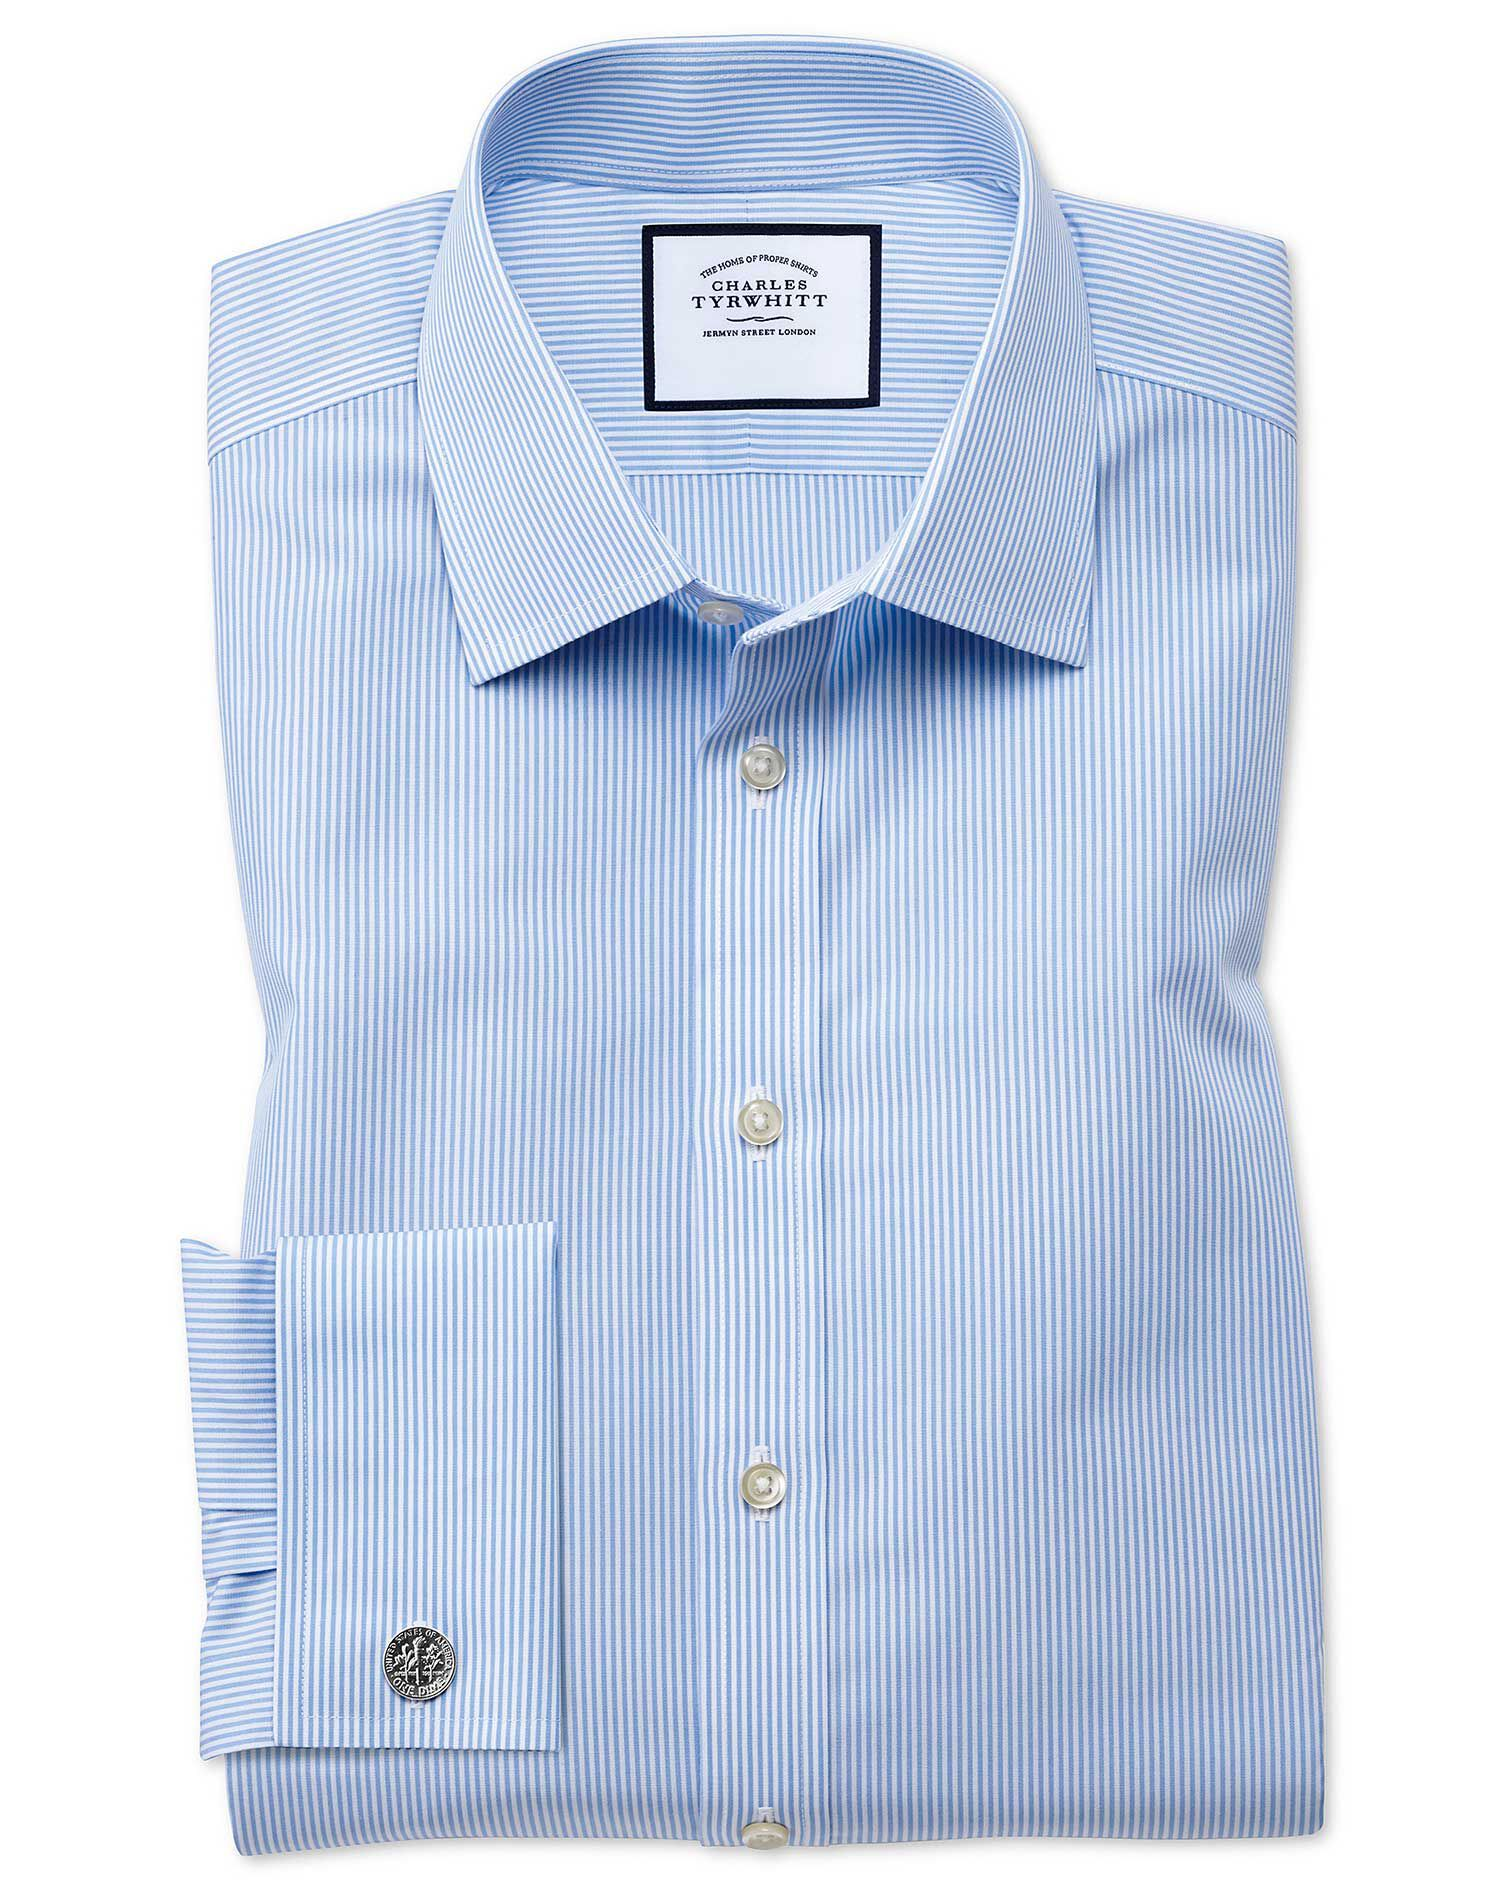 Extra Slim Fit Non-Iron Bengal Stripe Sky Blue Cotton Formal Shirt Double Cuff Size 16.5/33 by Charl